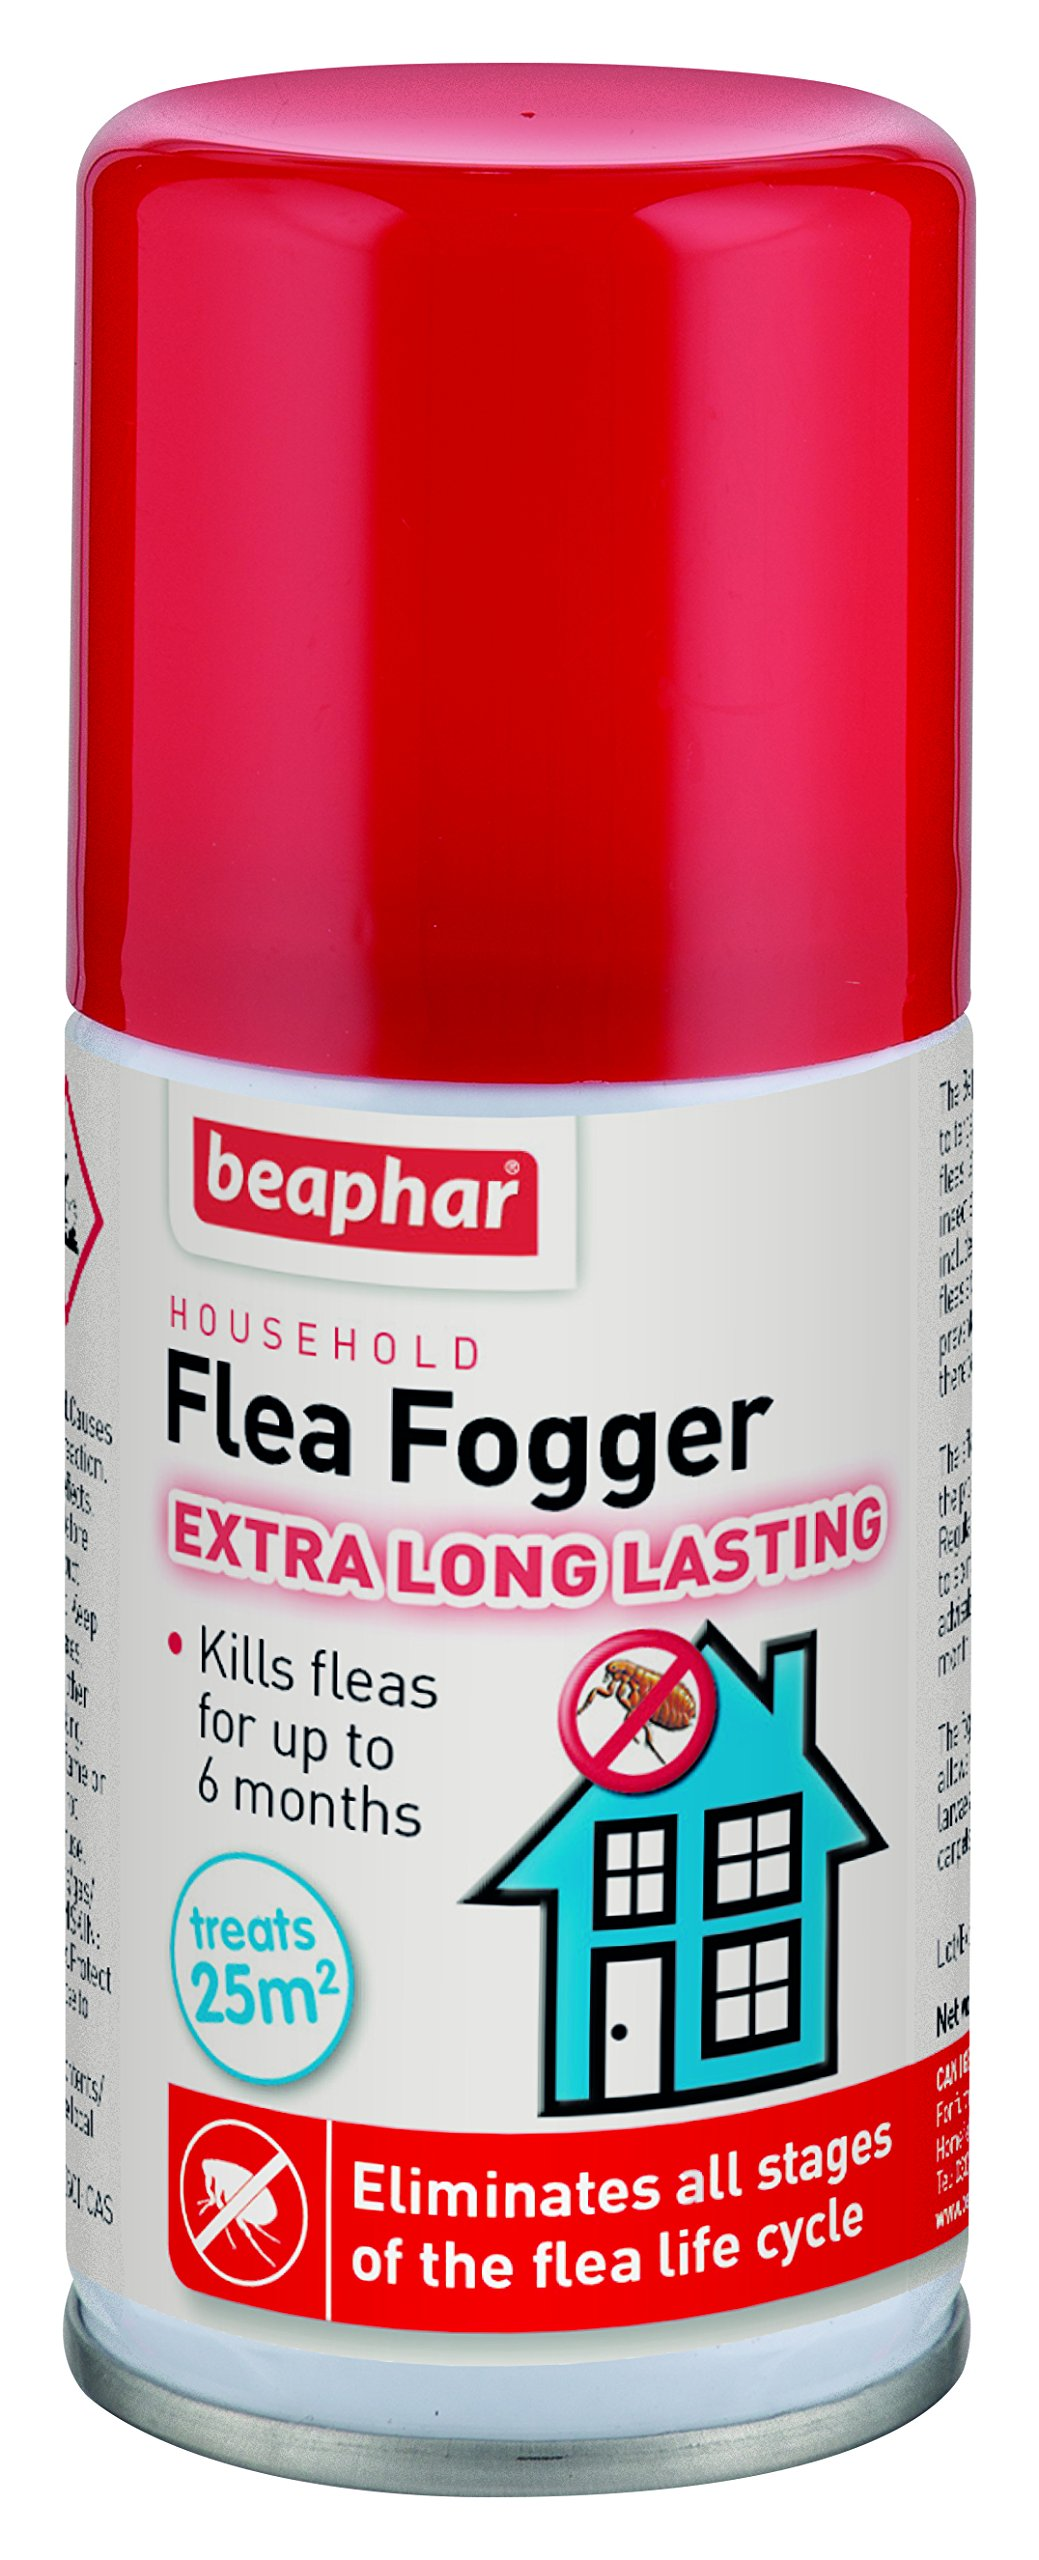 Beaphar Extra-long lasting Household Flea Fogger